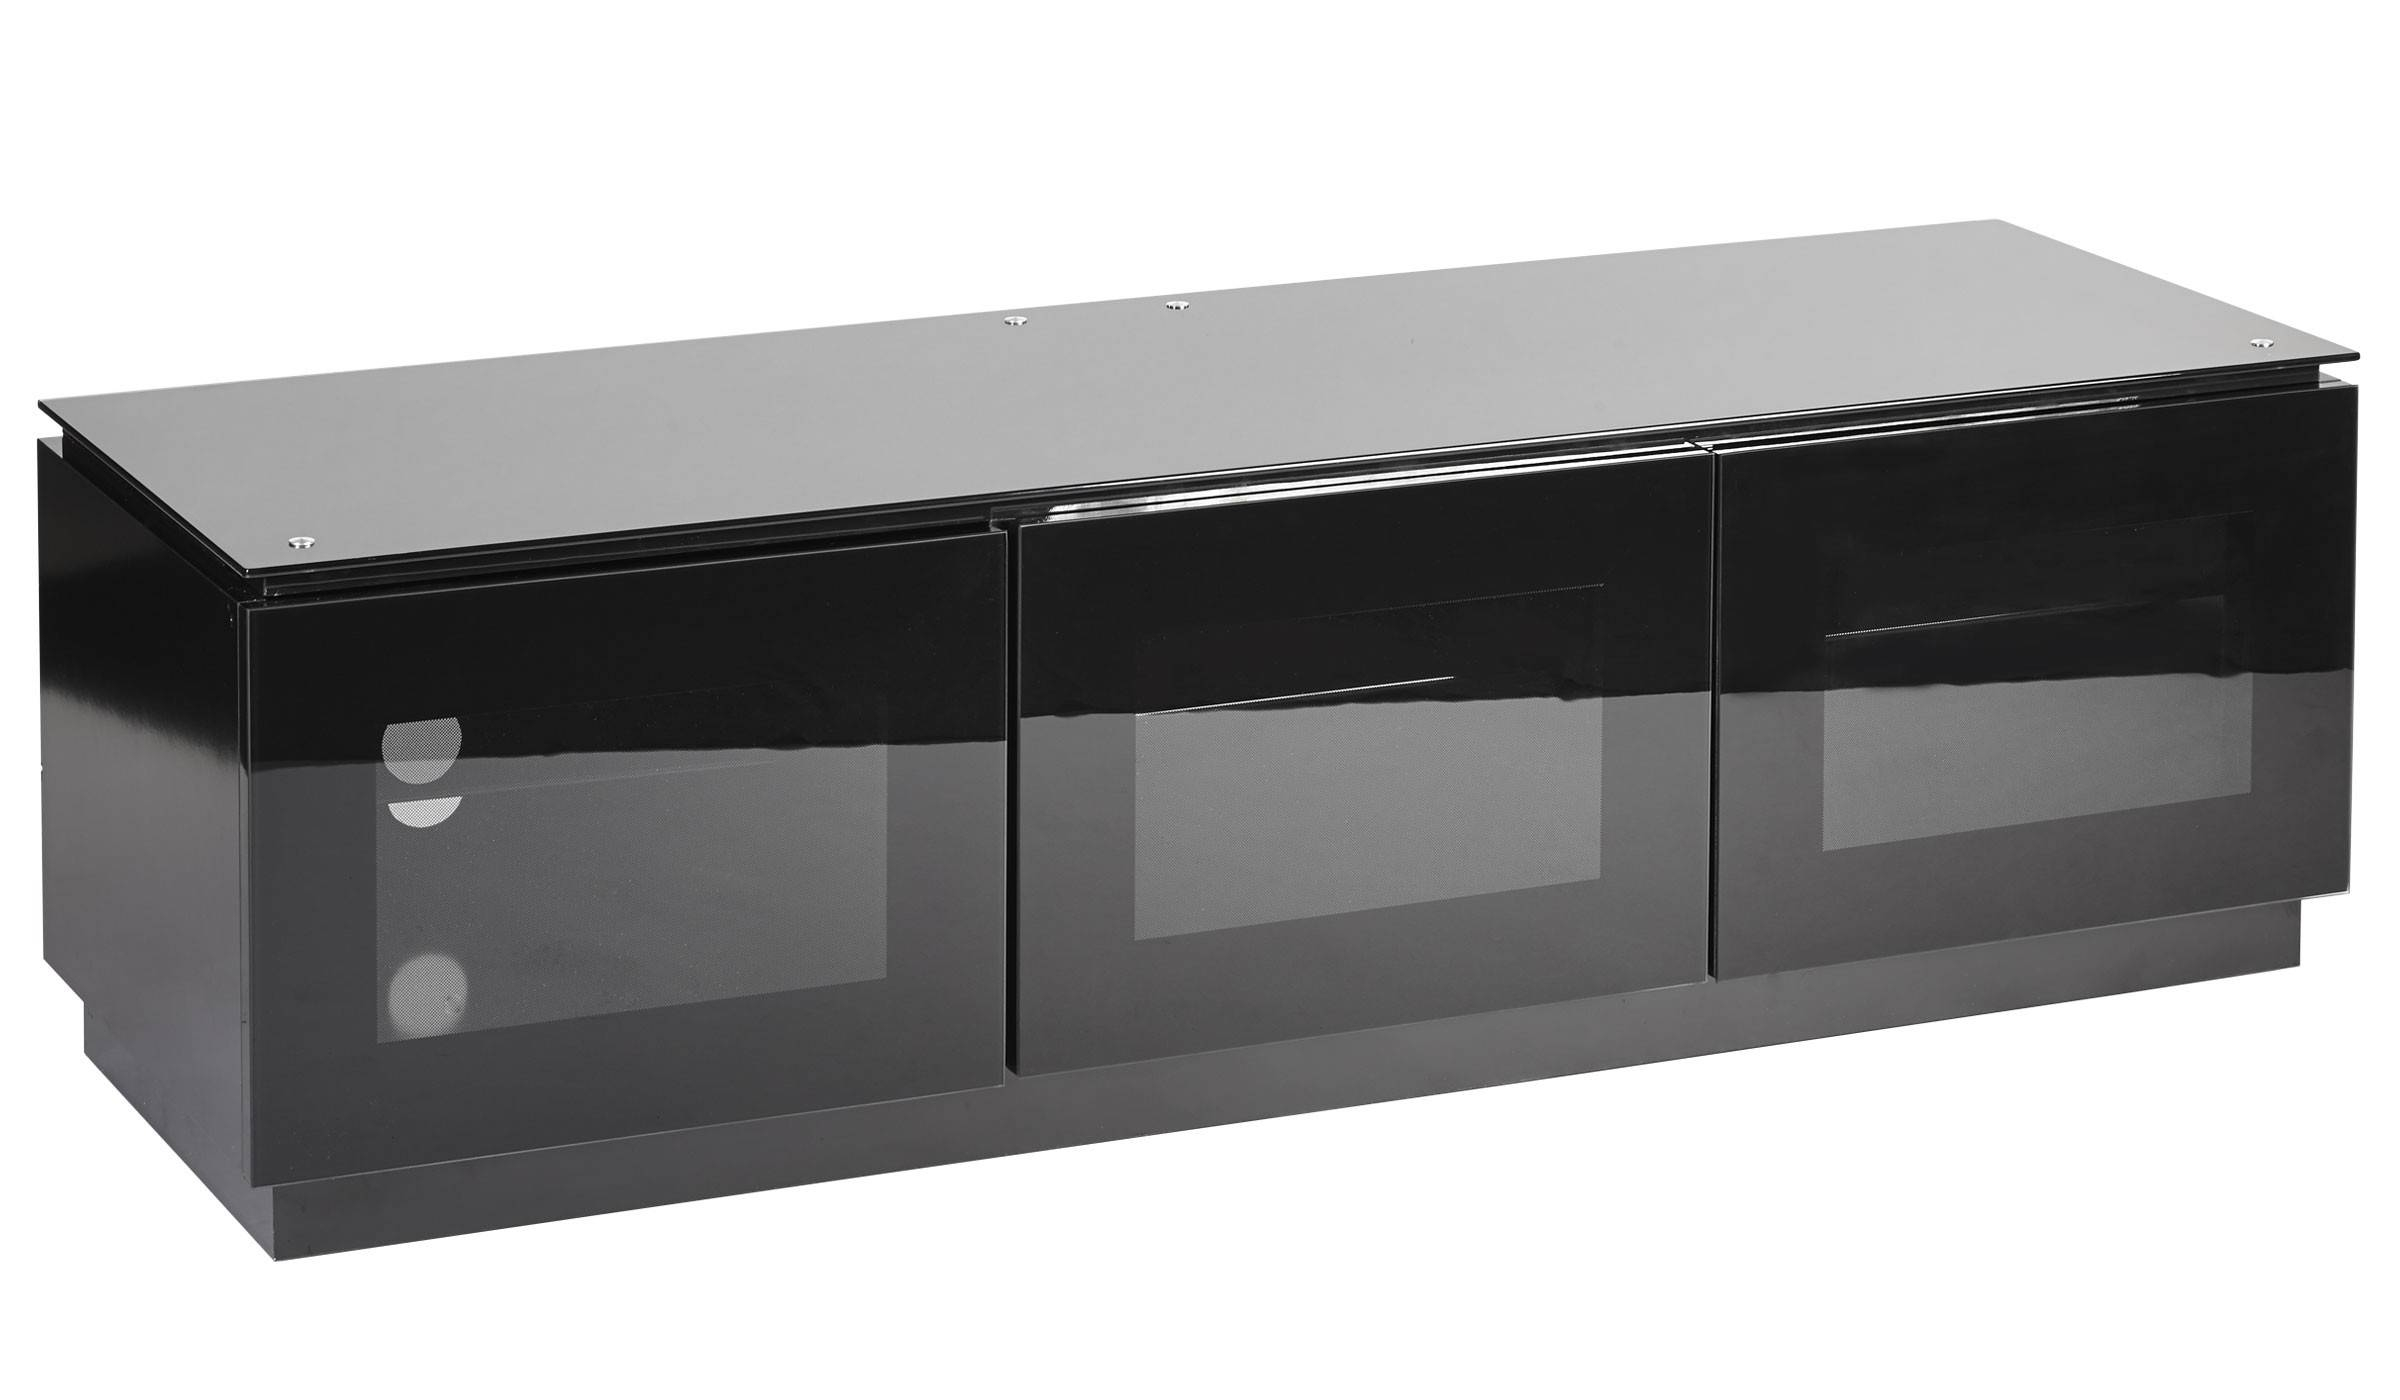 Black Gloss Tv Unit Up To 65 Inch Flat Tv | Mmt-D1500 within Black Gloss Sideboards (Image 5 of 30)